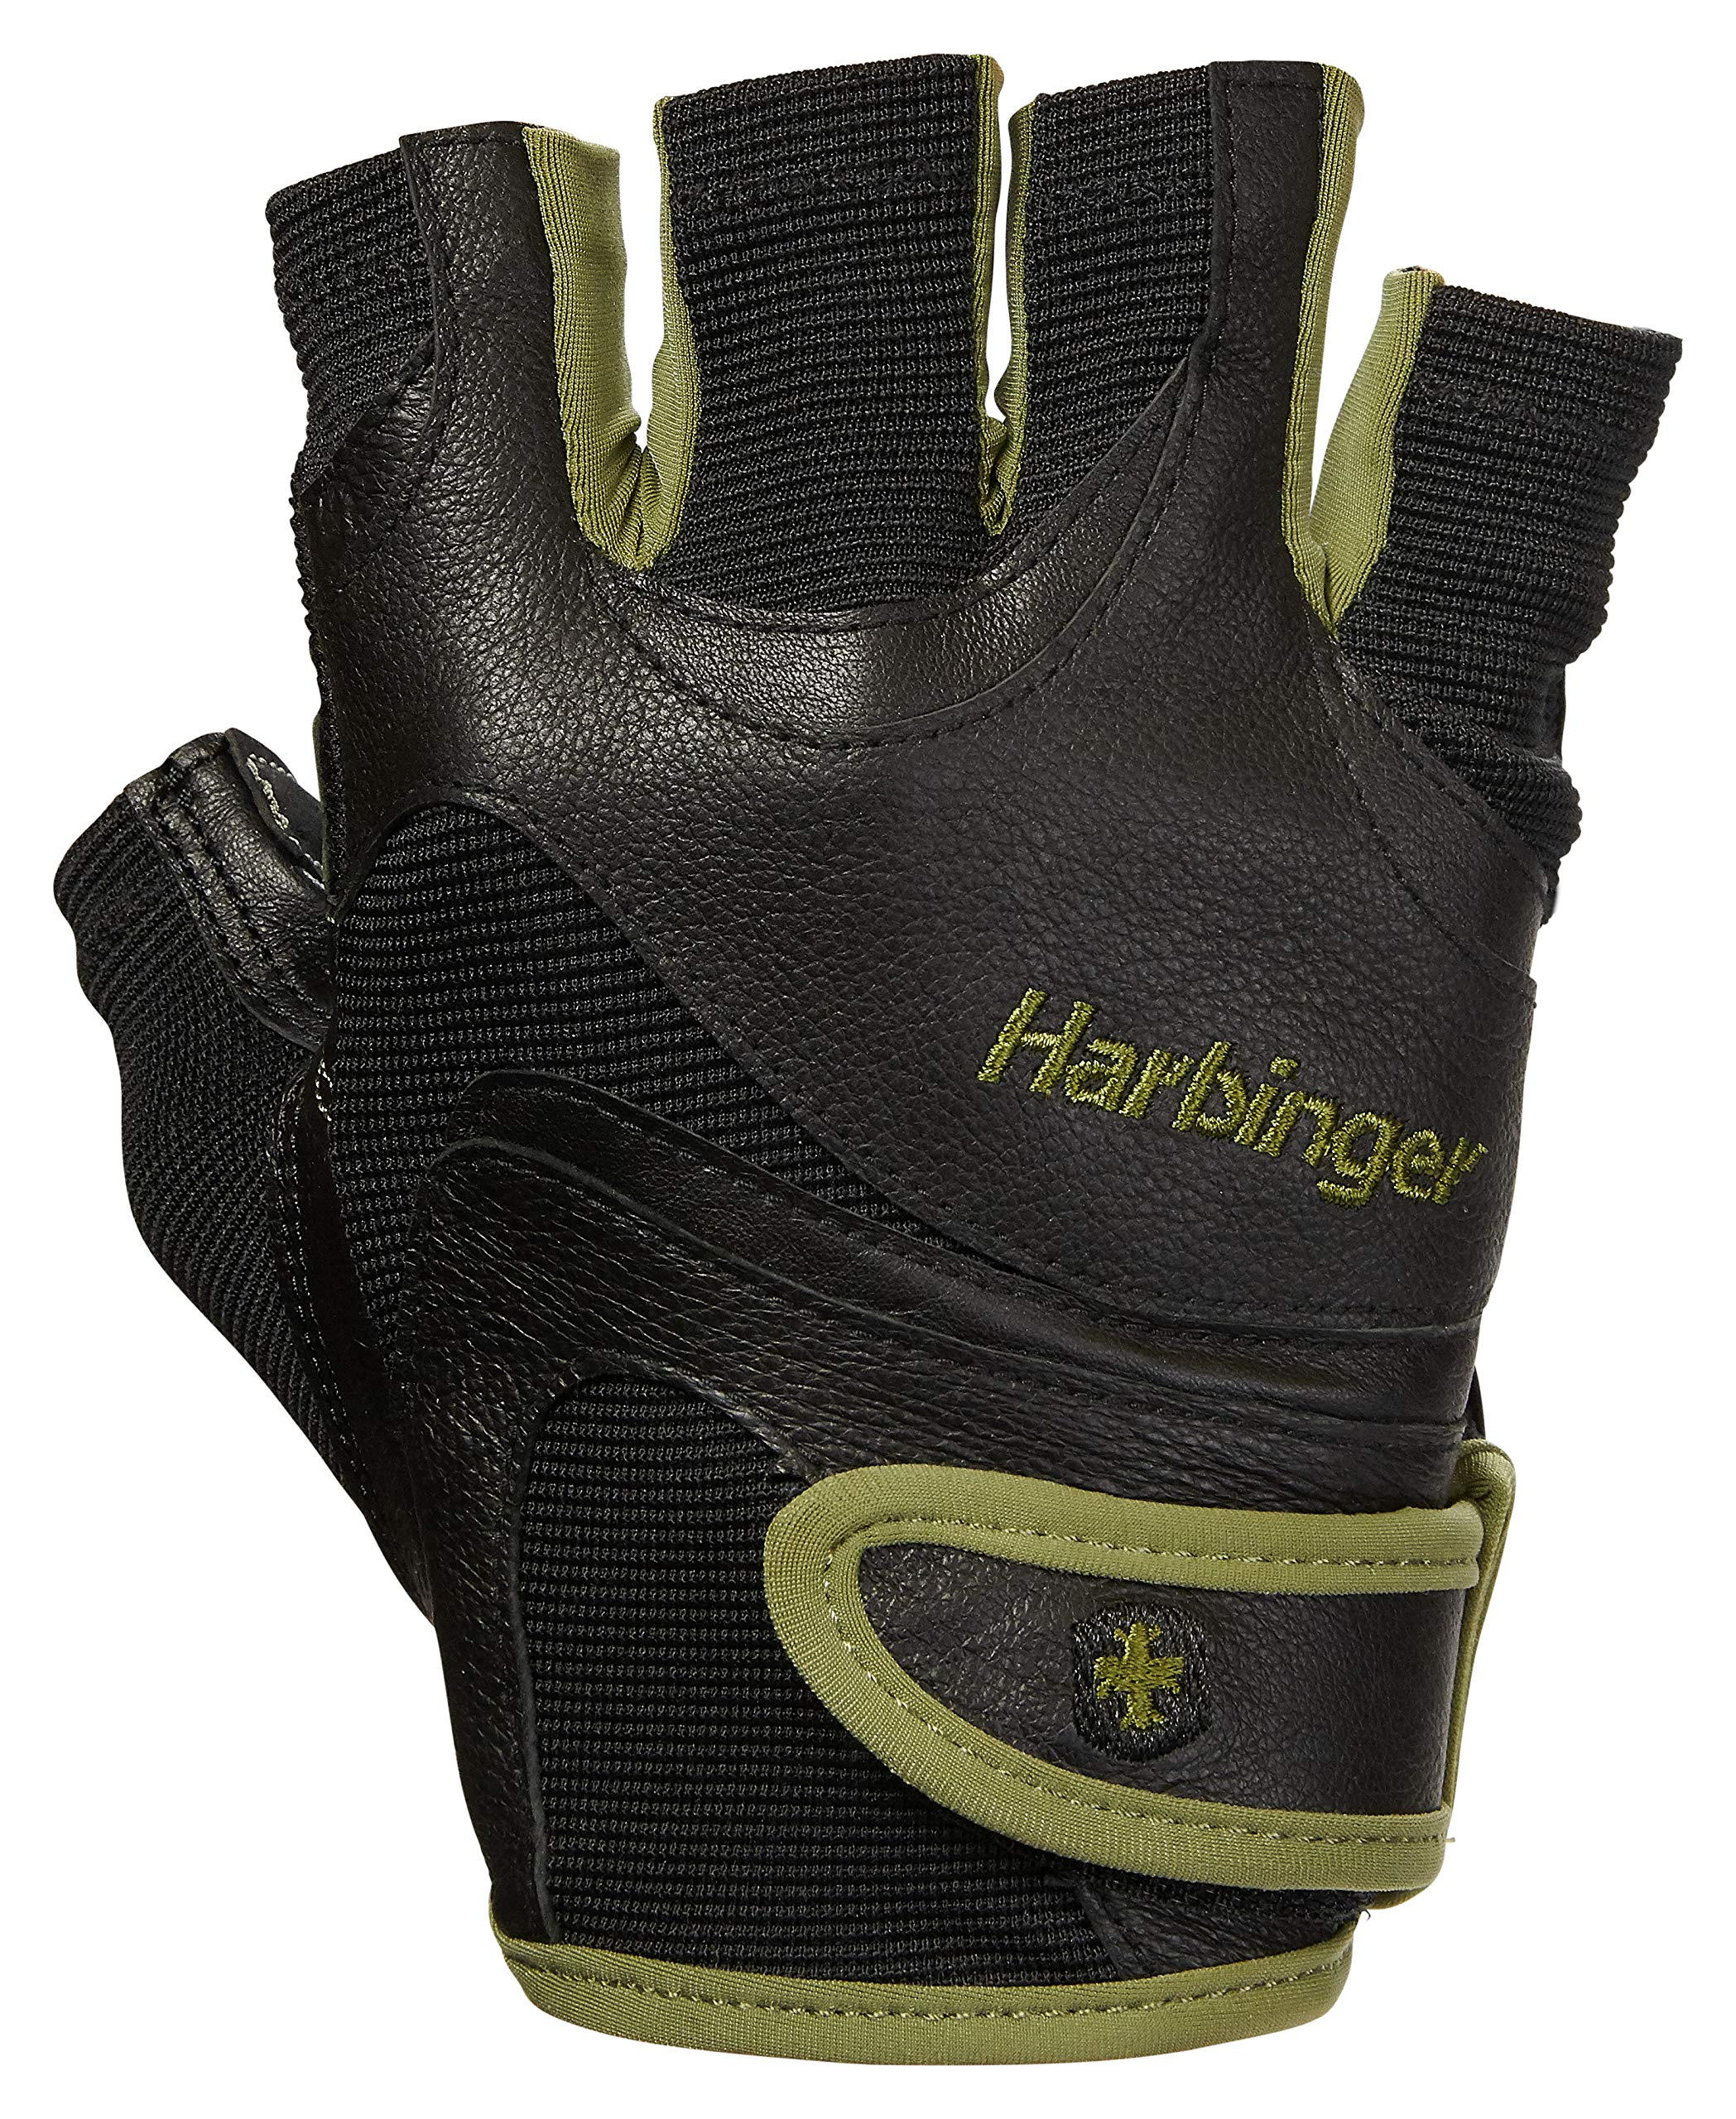 Harbinger FlexFit Non-Wristwrap Weightlifting Gloves with Flexible Cushioned Leather Palm (Pair), Green, Medium by Harbinger